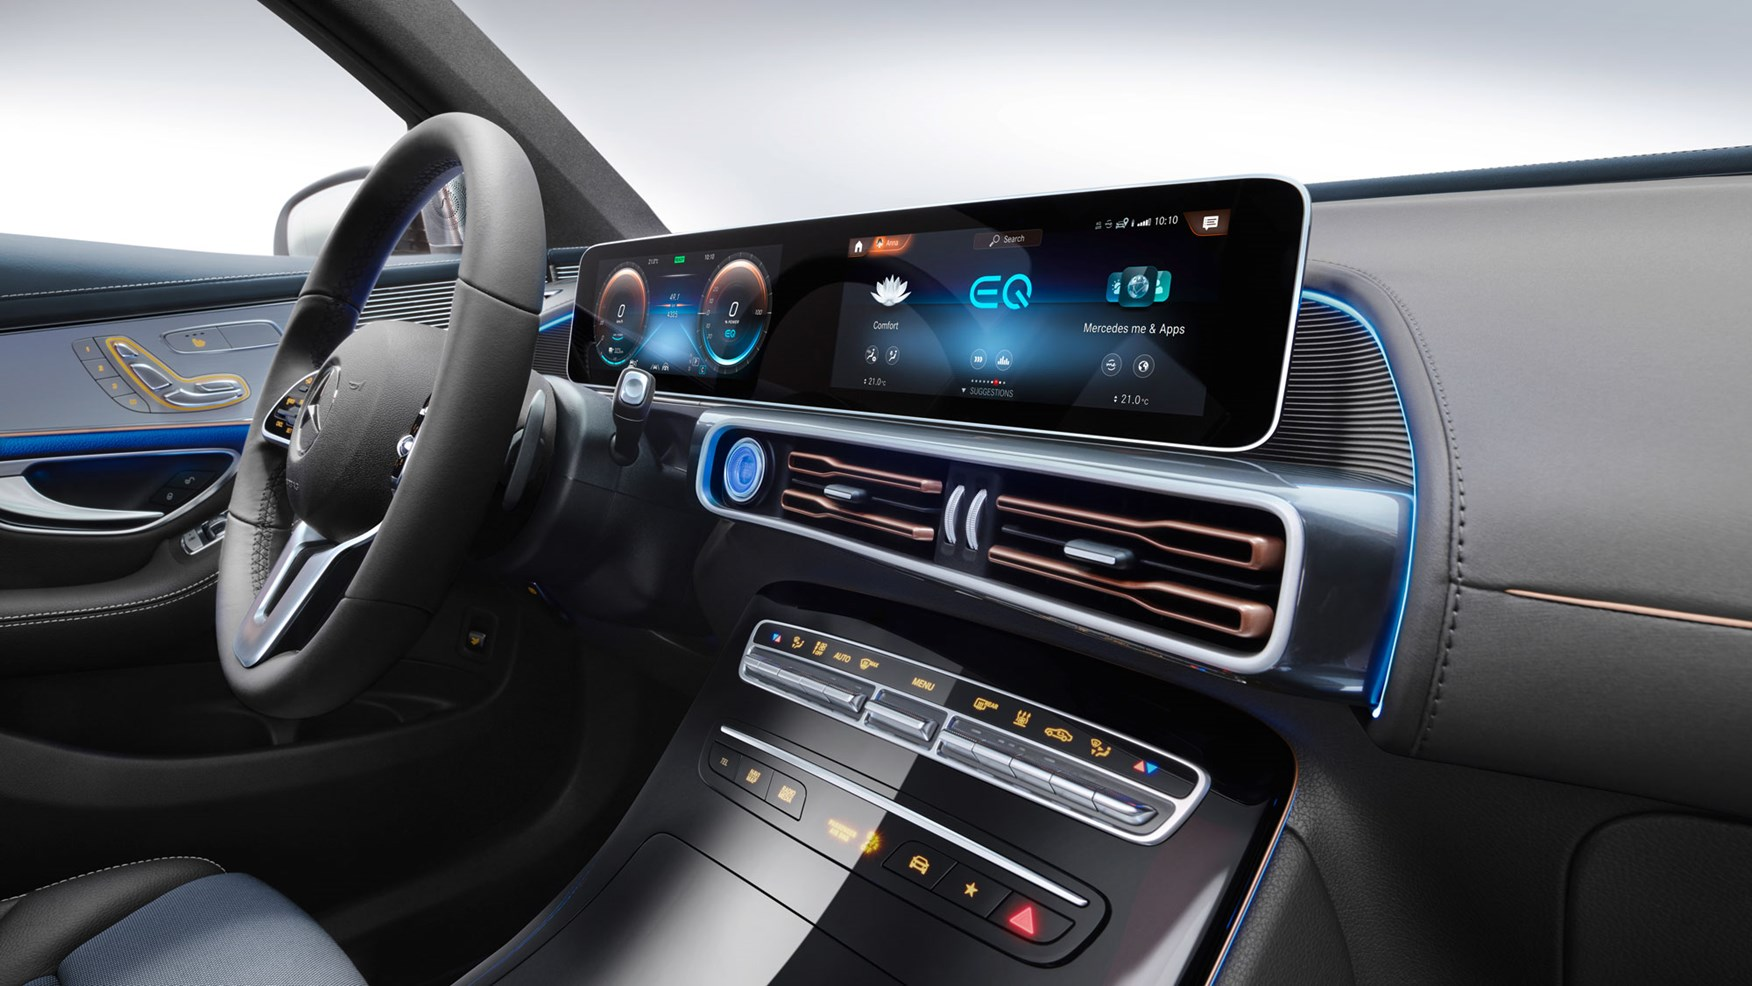 Mercedes-Benz EQC dashboard